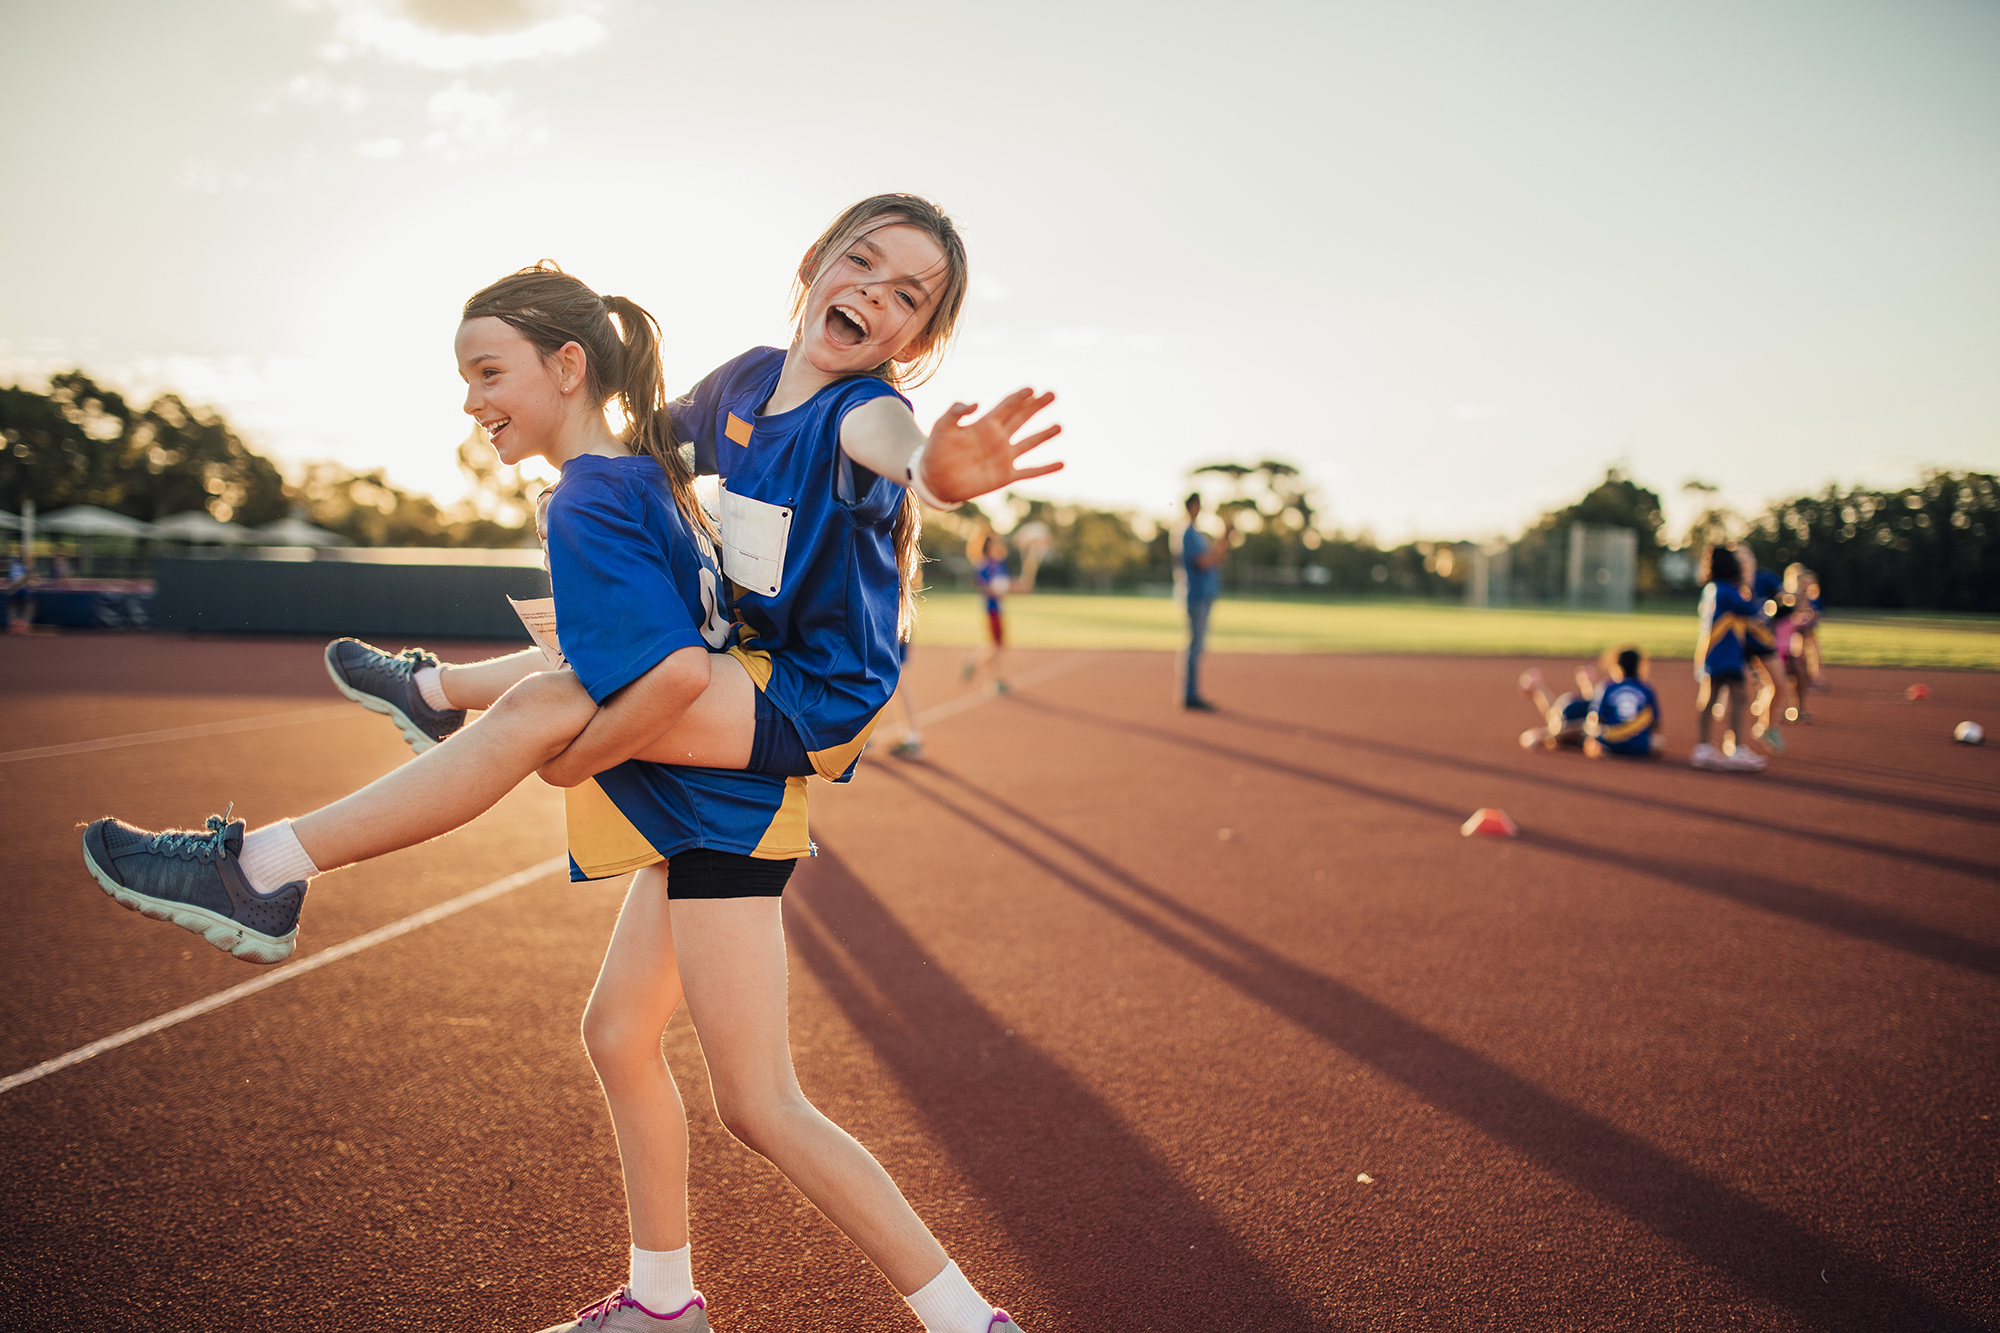 Two girls are messing around at athletics club on the running track. One is giving the other a piggy back and she is reaching out for the camera.